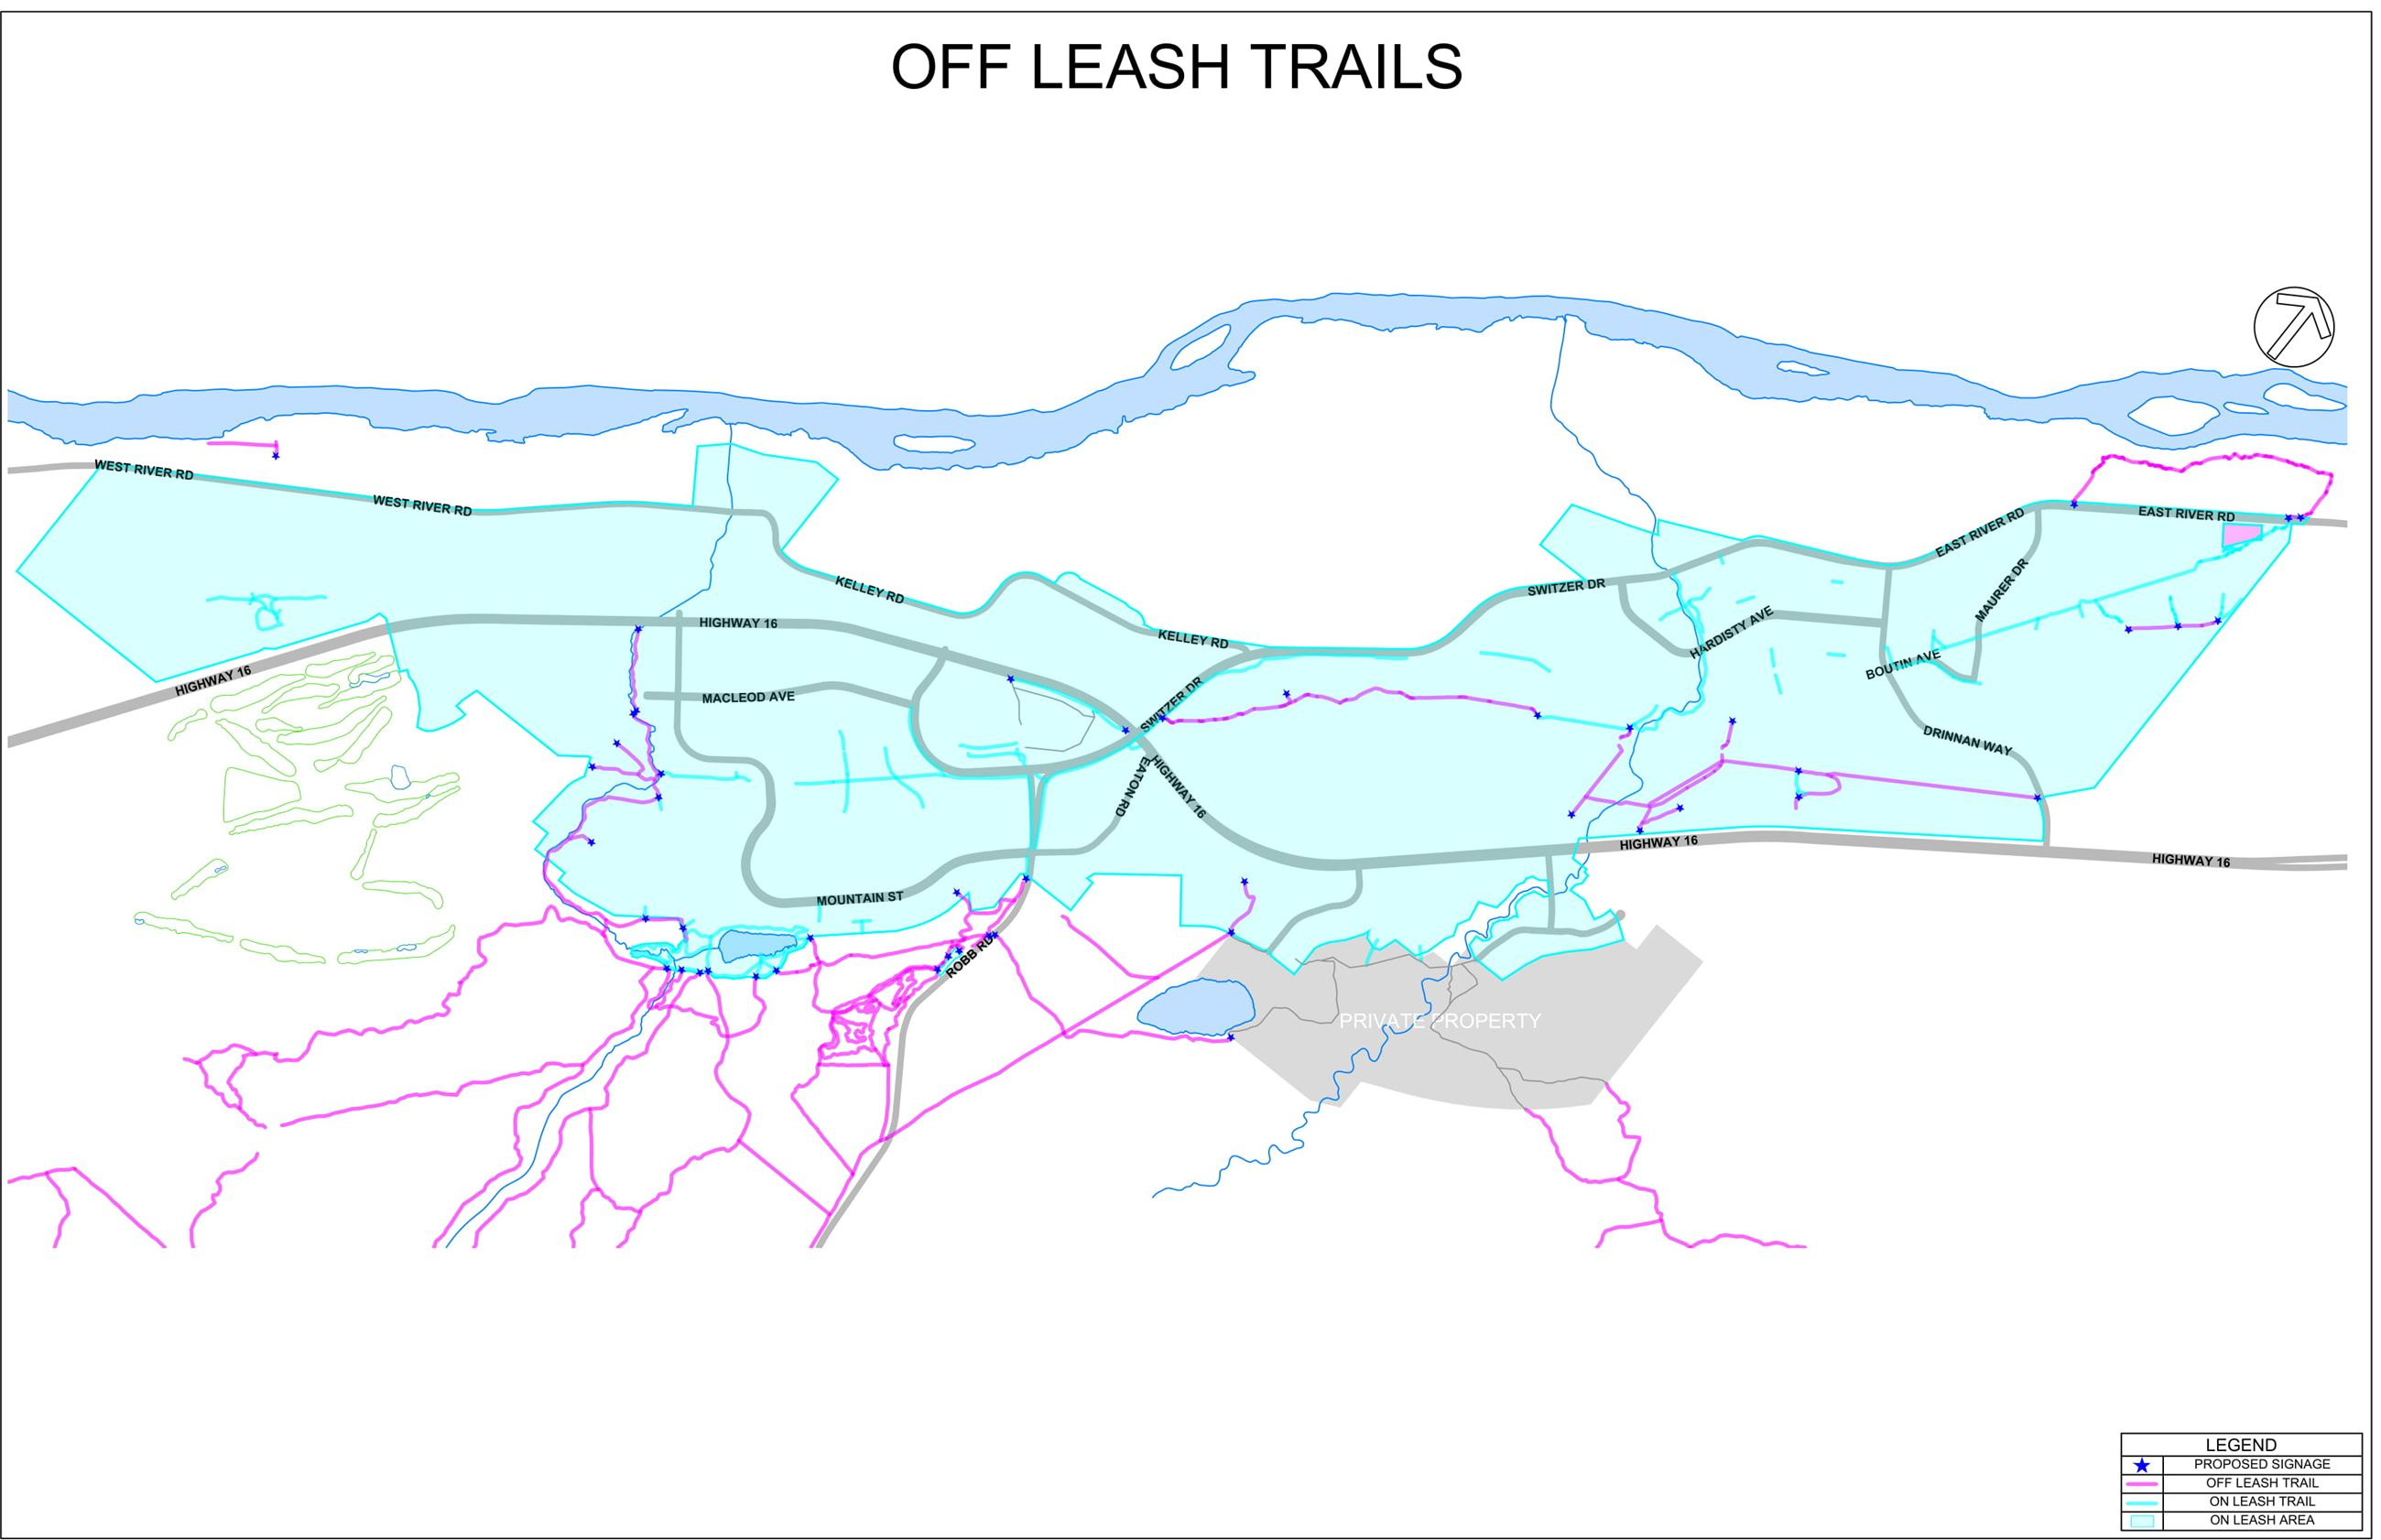 2018 06 11 Off Leash Areas-Whole 1-1